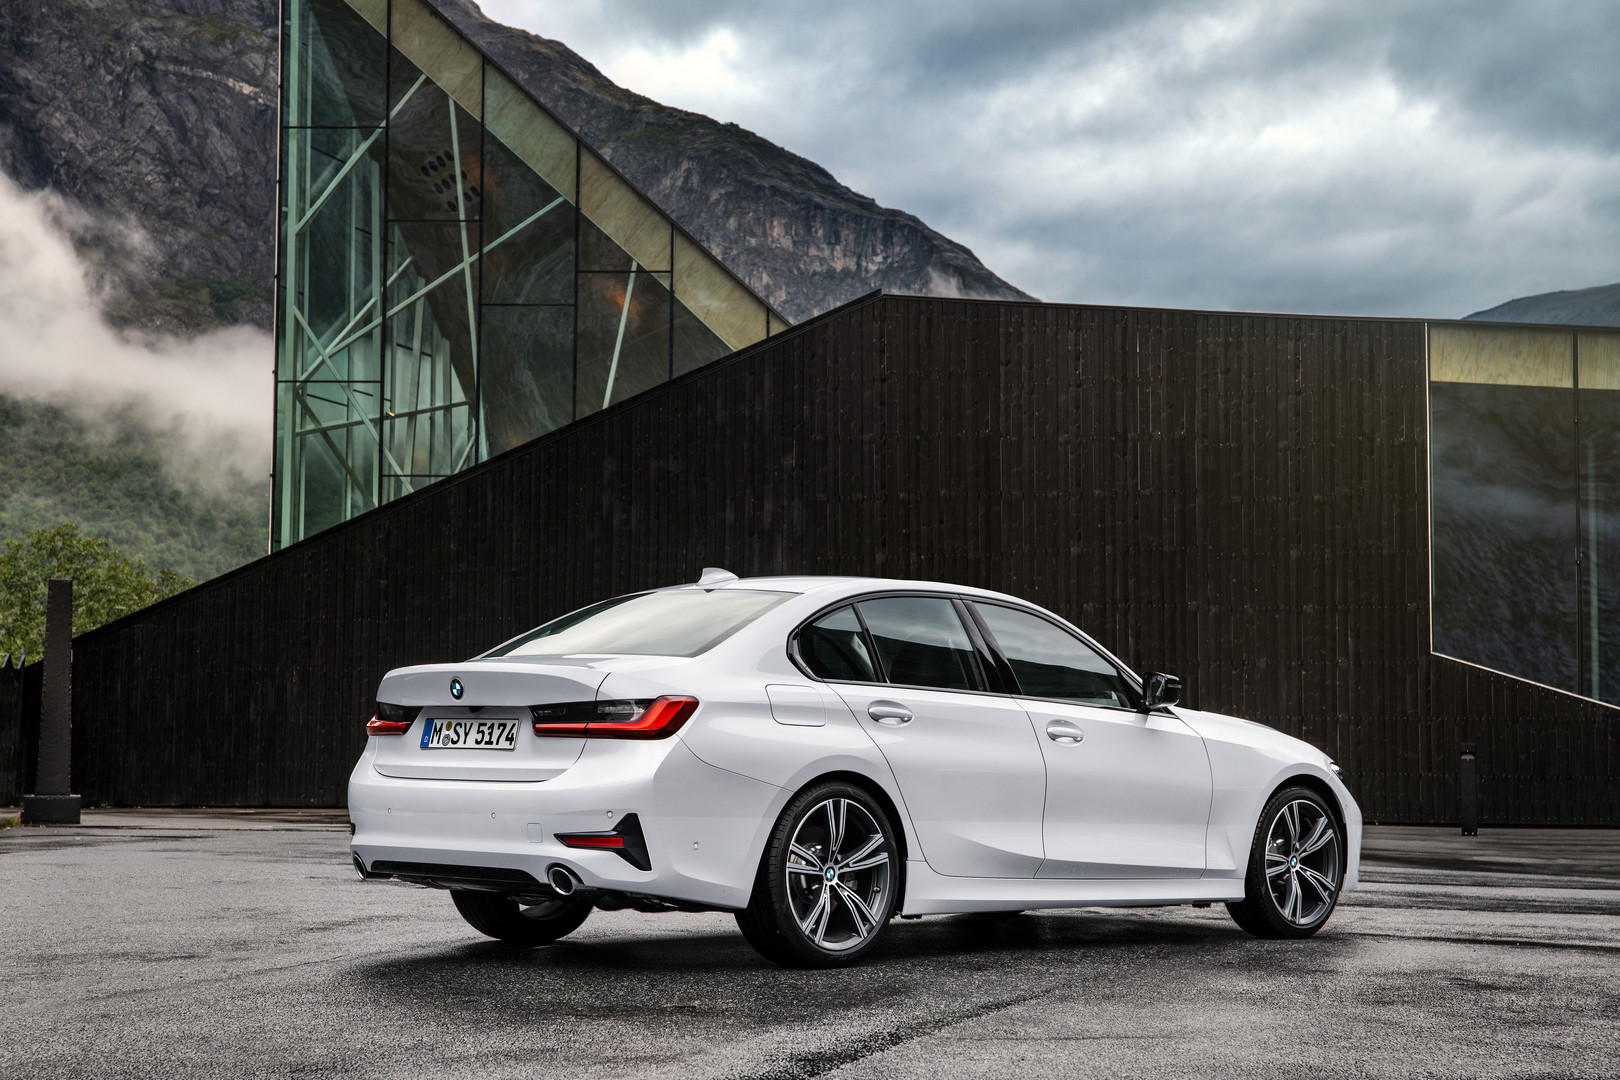 2019 BMW 3 Series G20 Rear View